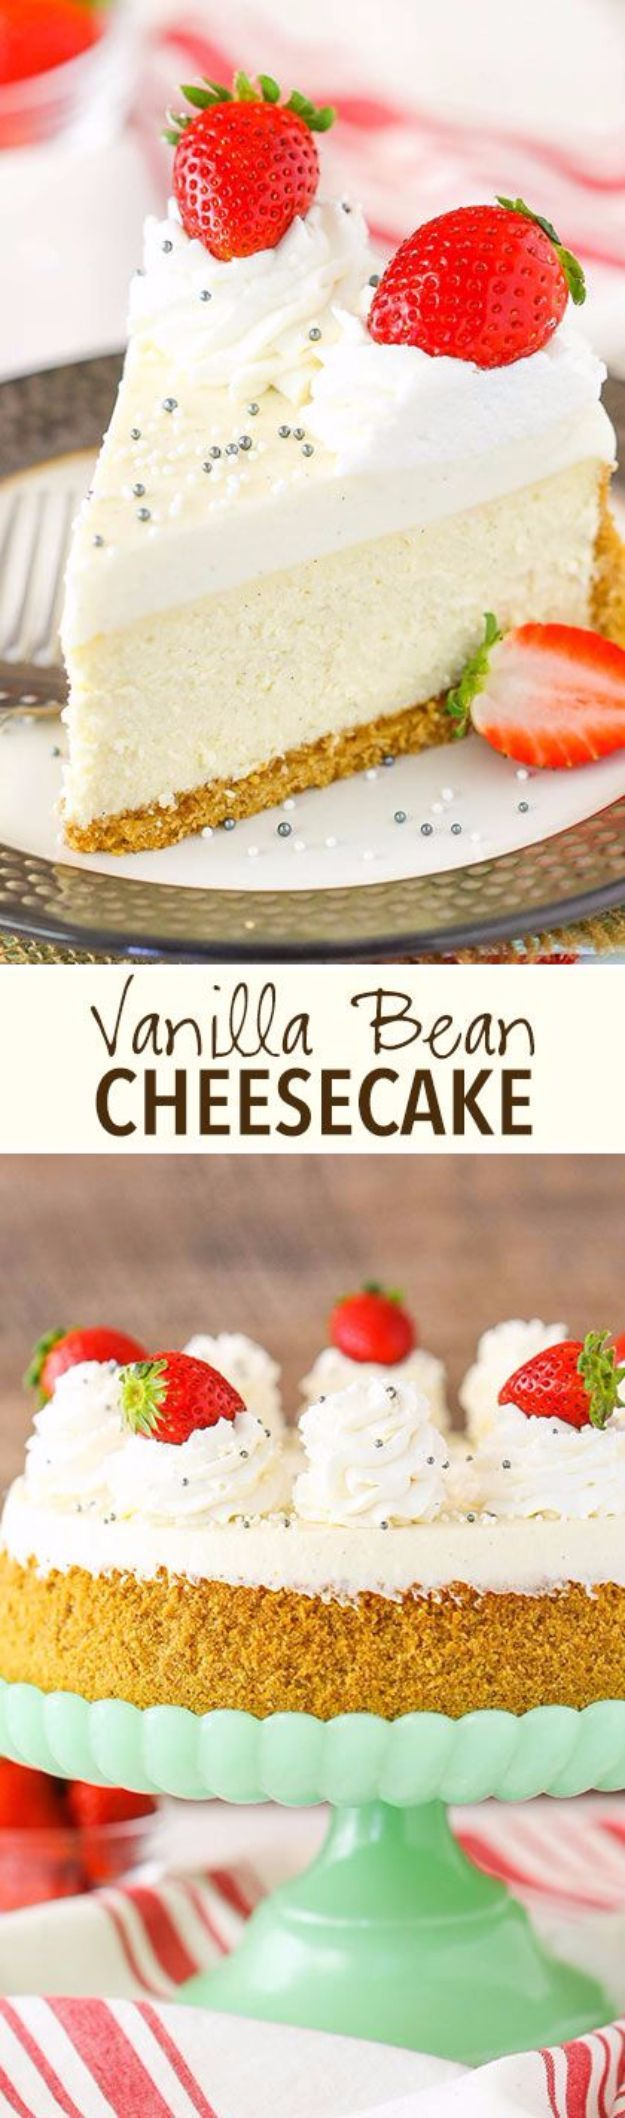 Best Cheesecake Recipes - Vanilla Bean Cheesecake - Easy and Quick Recipe Ideas for Cheesecakes and Desserts - Chocolate, Simple Plain Classic, New York, Mini, Oreo, Lemon, Raspberry and Quick No Bake - Step by Step Instructions and Tutorials for Yummy Dessert - DIY Projects and Crafts by DIY JOY http://diyjoy.com/best-cheesecake-recipes